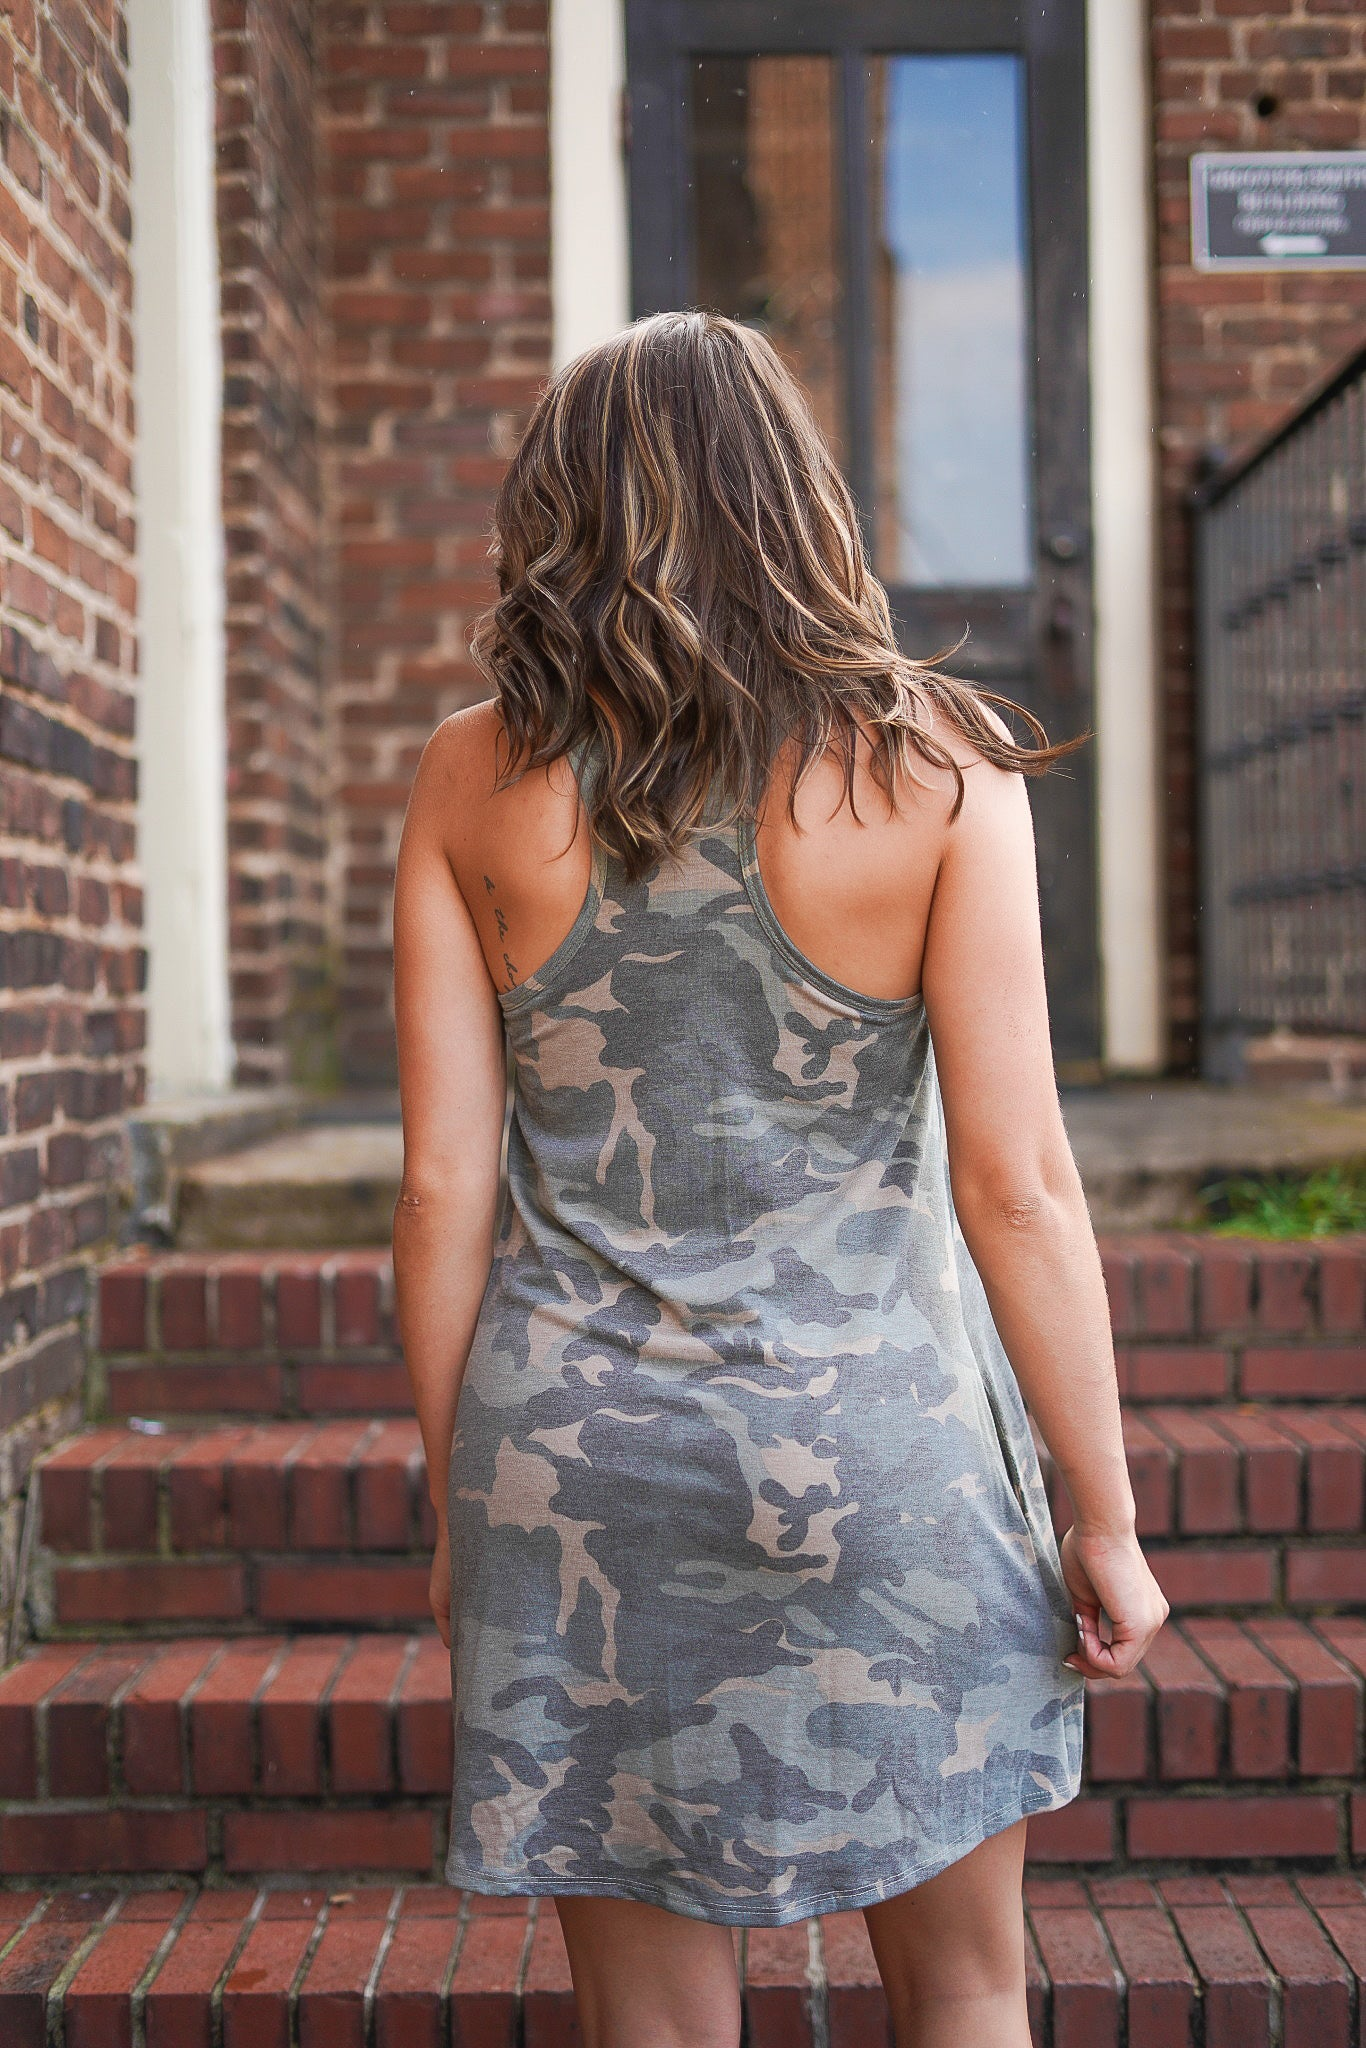 Casually Camo Dress